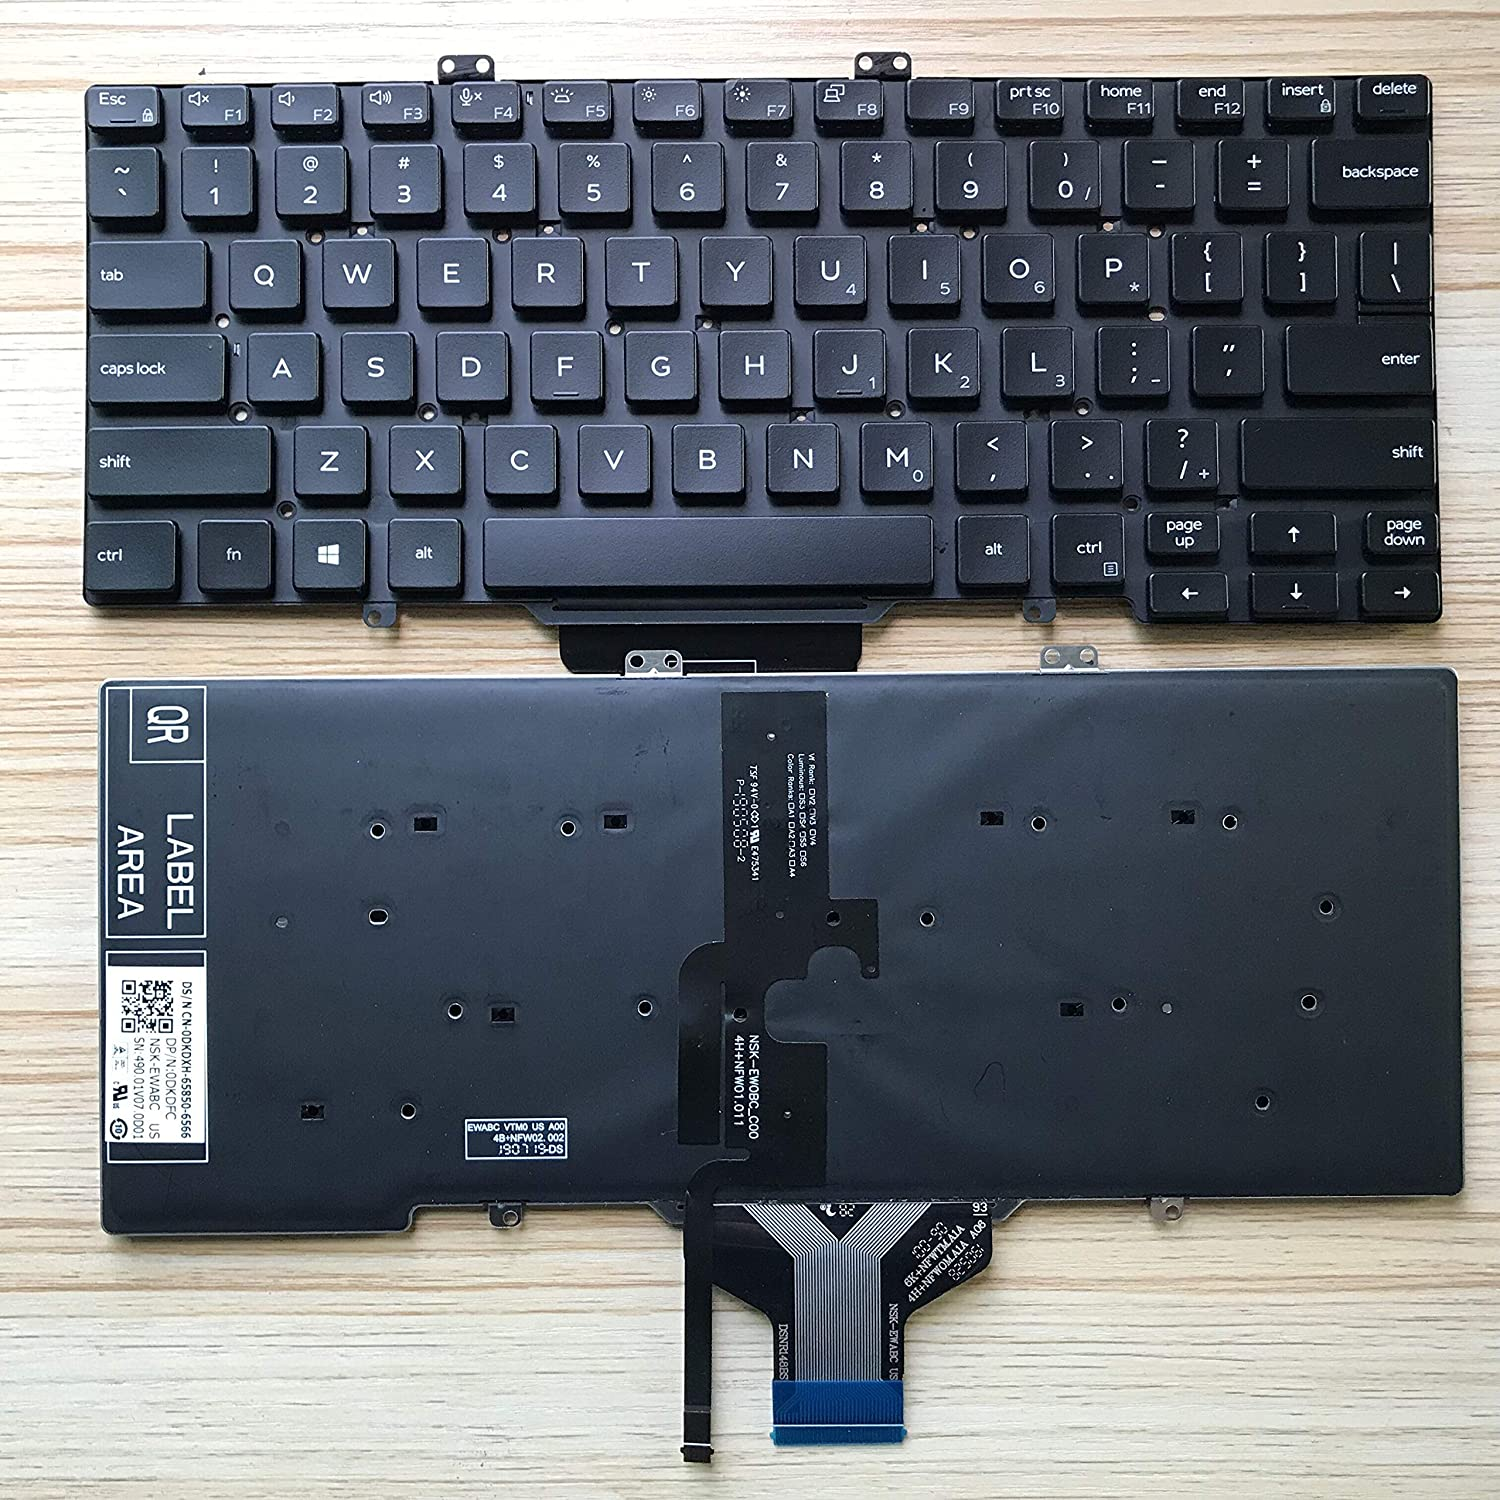 KB US Layout Notebook Keyboard for DELL Dell Latitude 14 5400 5401 7400 L3400 7410 5402 Series Black No Frame, with Backlight, no Joystick 7400